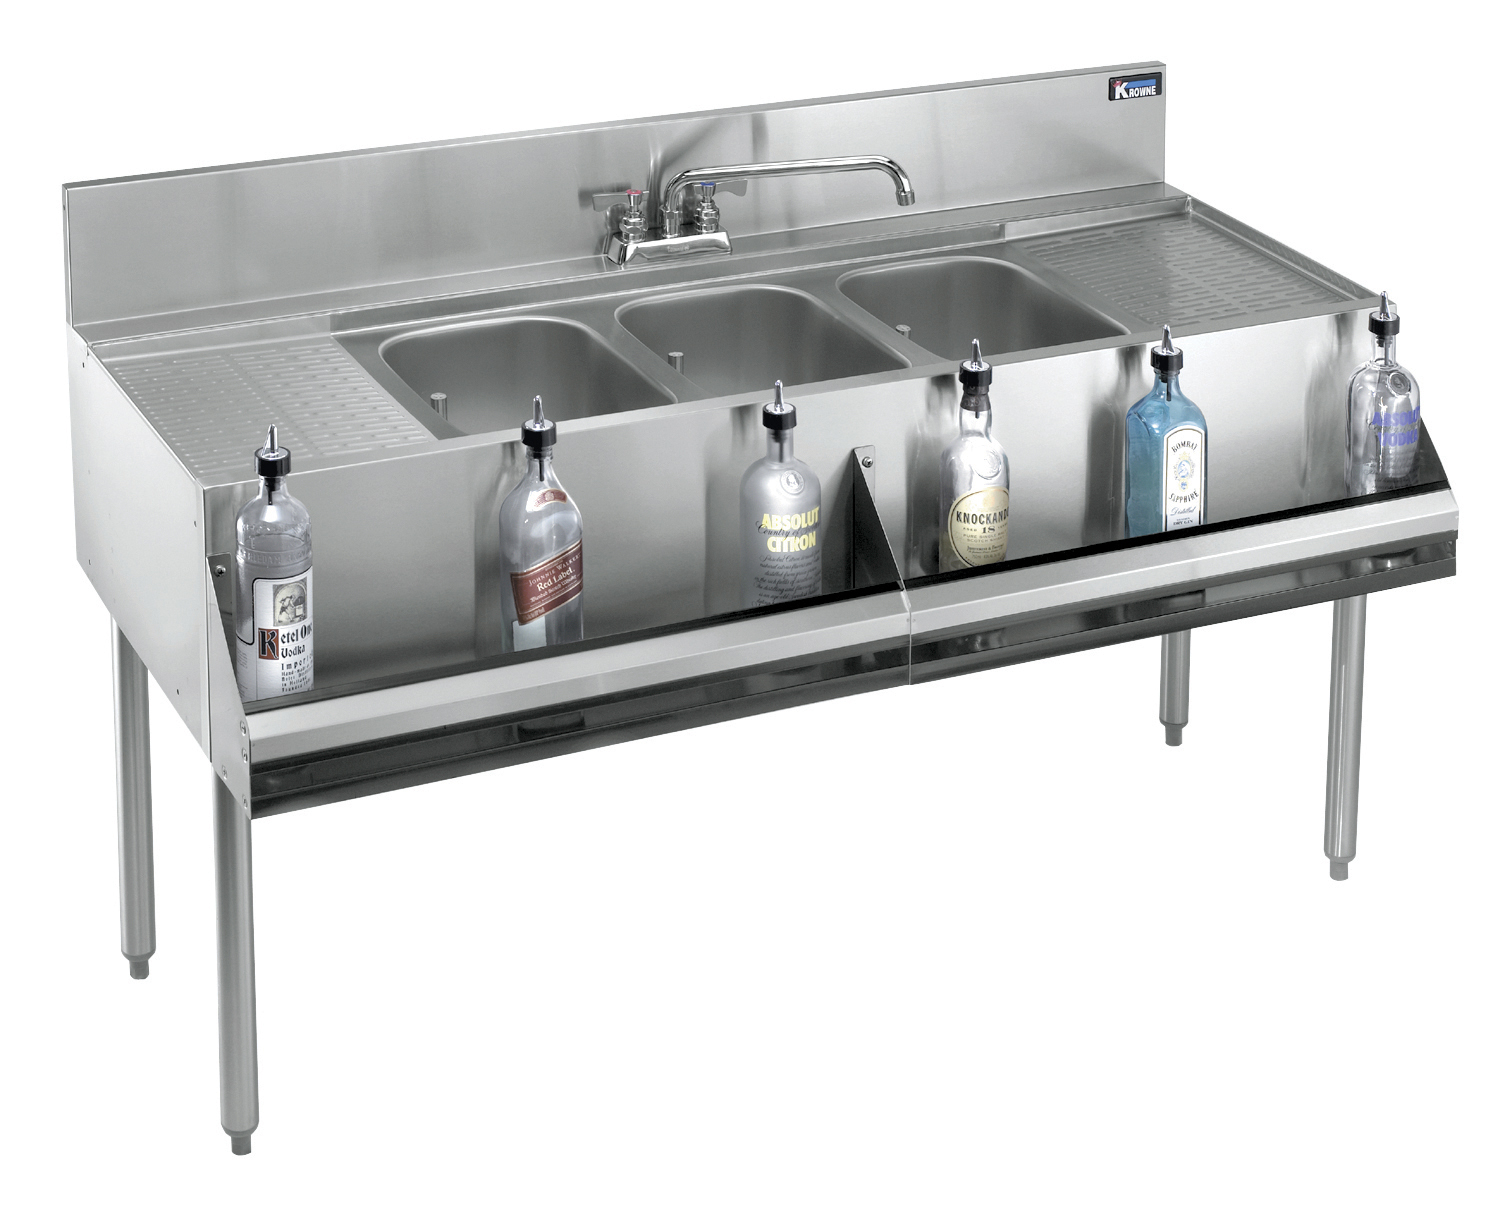 Krowne Metal KR18-73C underbar sink units